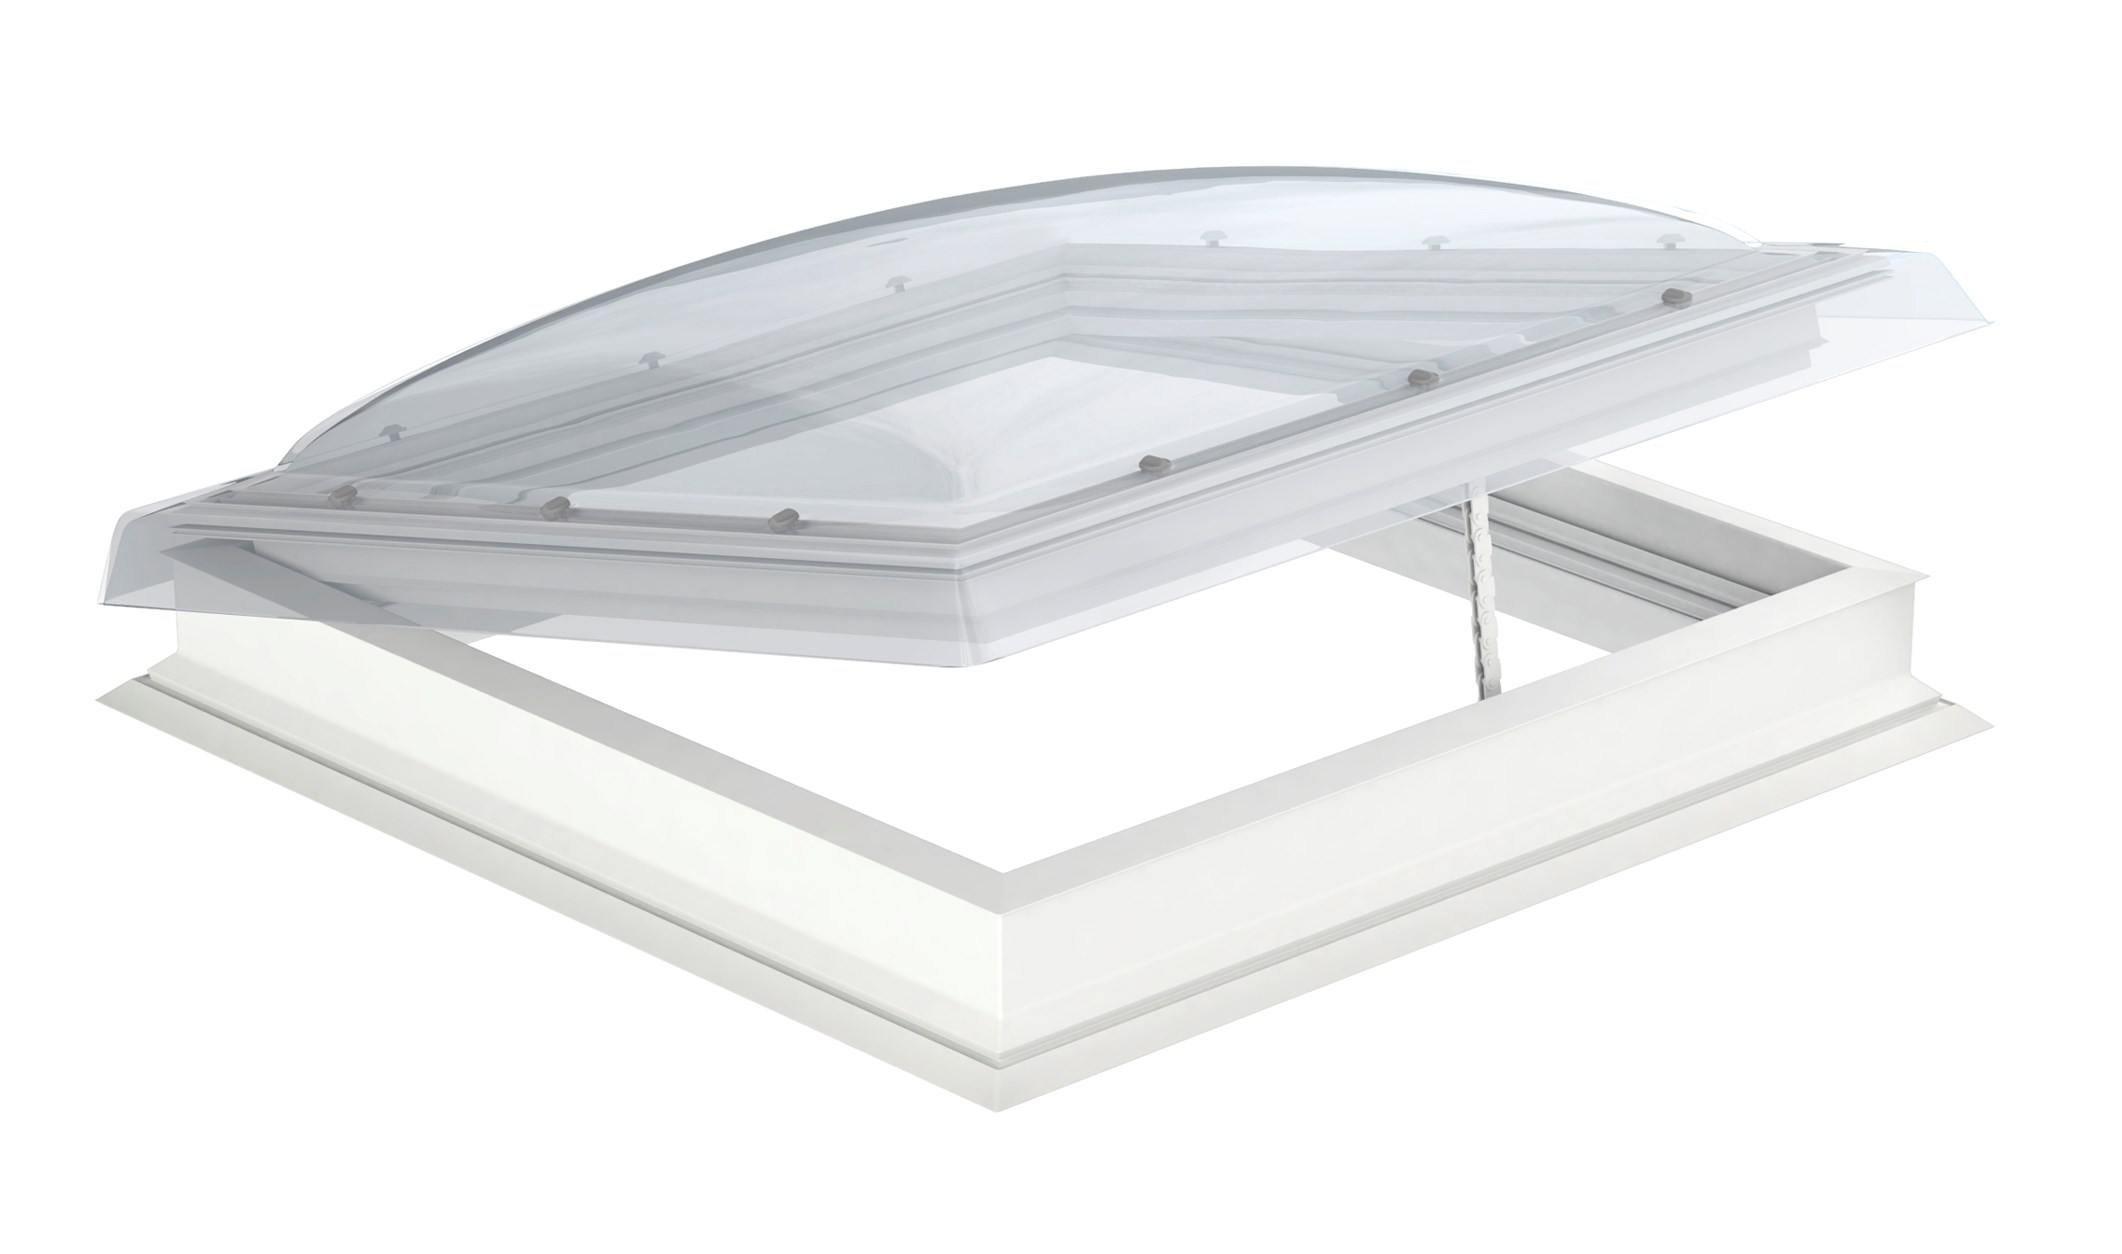 Velux Flat Roof Electric Dome Window Cvp S02g Roof